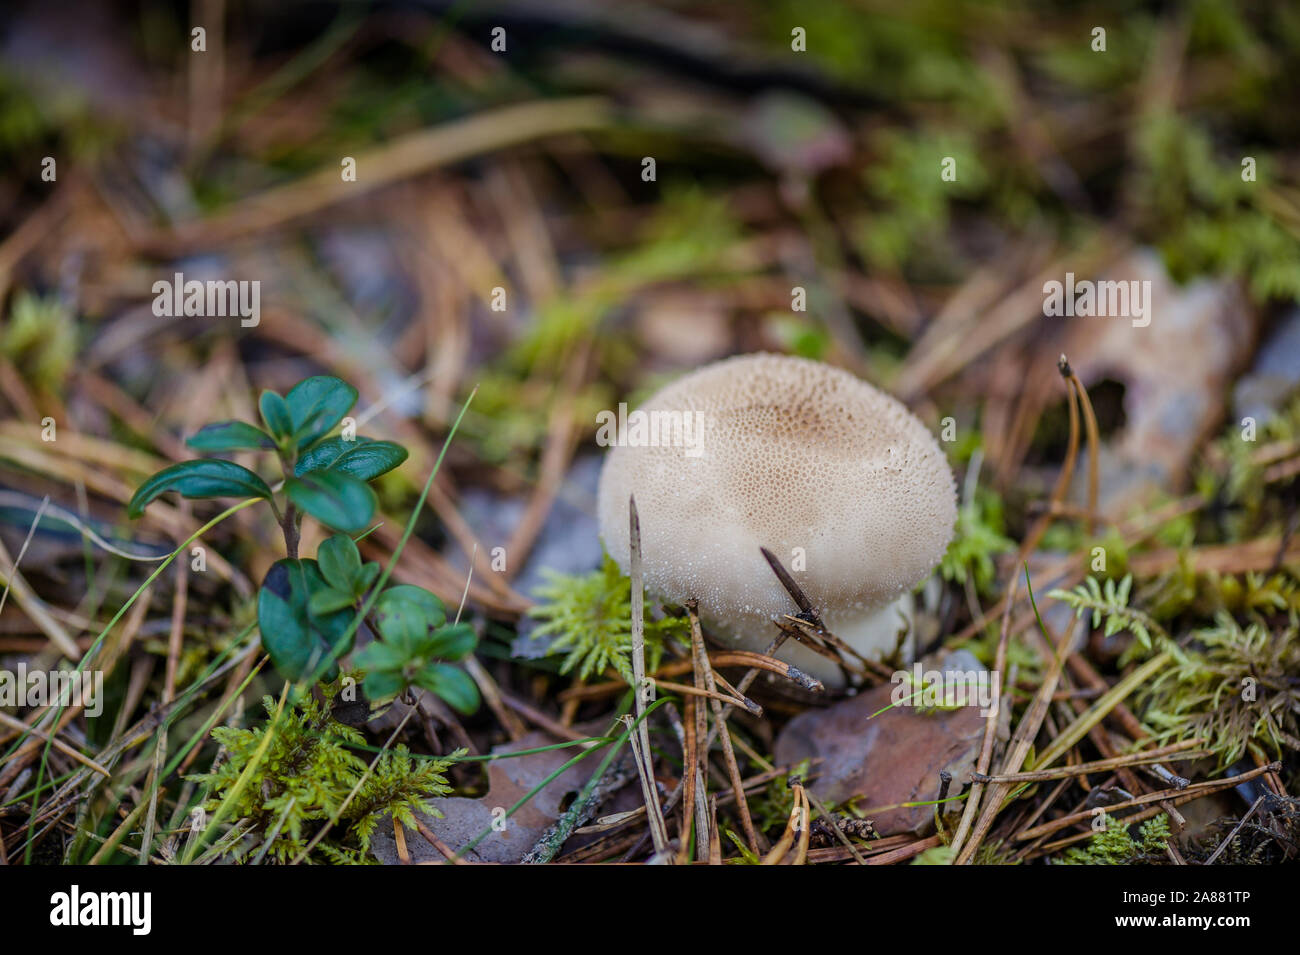 Mushroom raincoat growing in the forest among the moss. Edible little mushrooms Lisoperdon stick out of the ground with natural background. Outdoors c Stock Photo